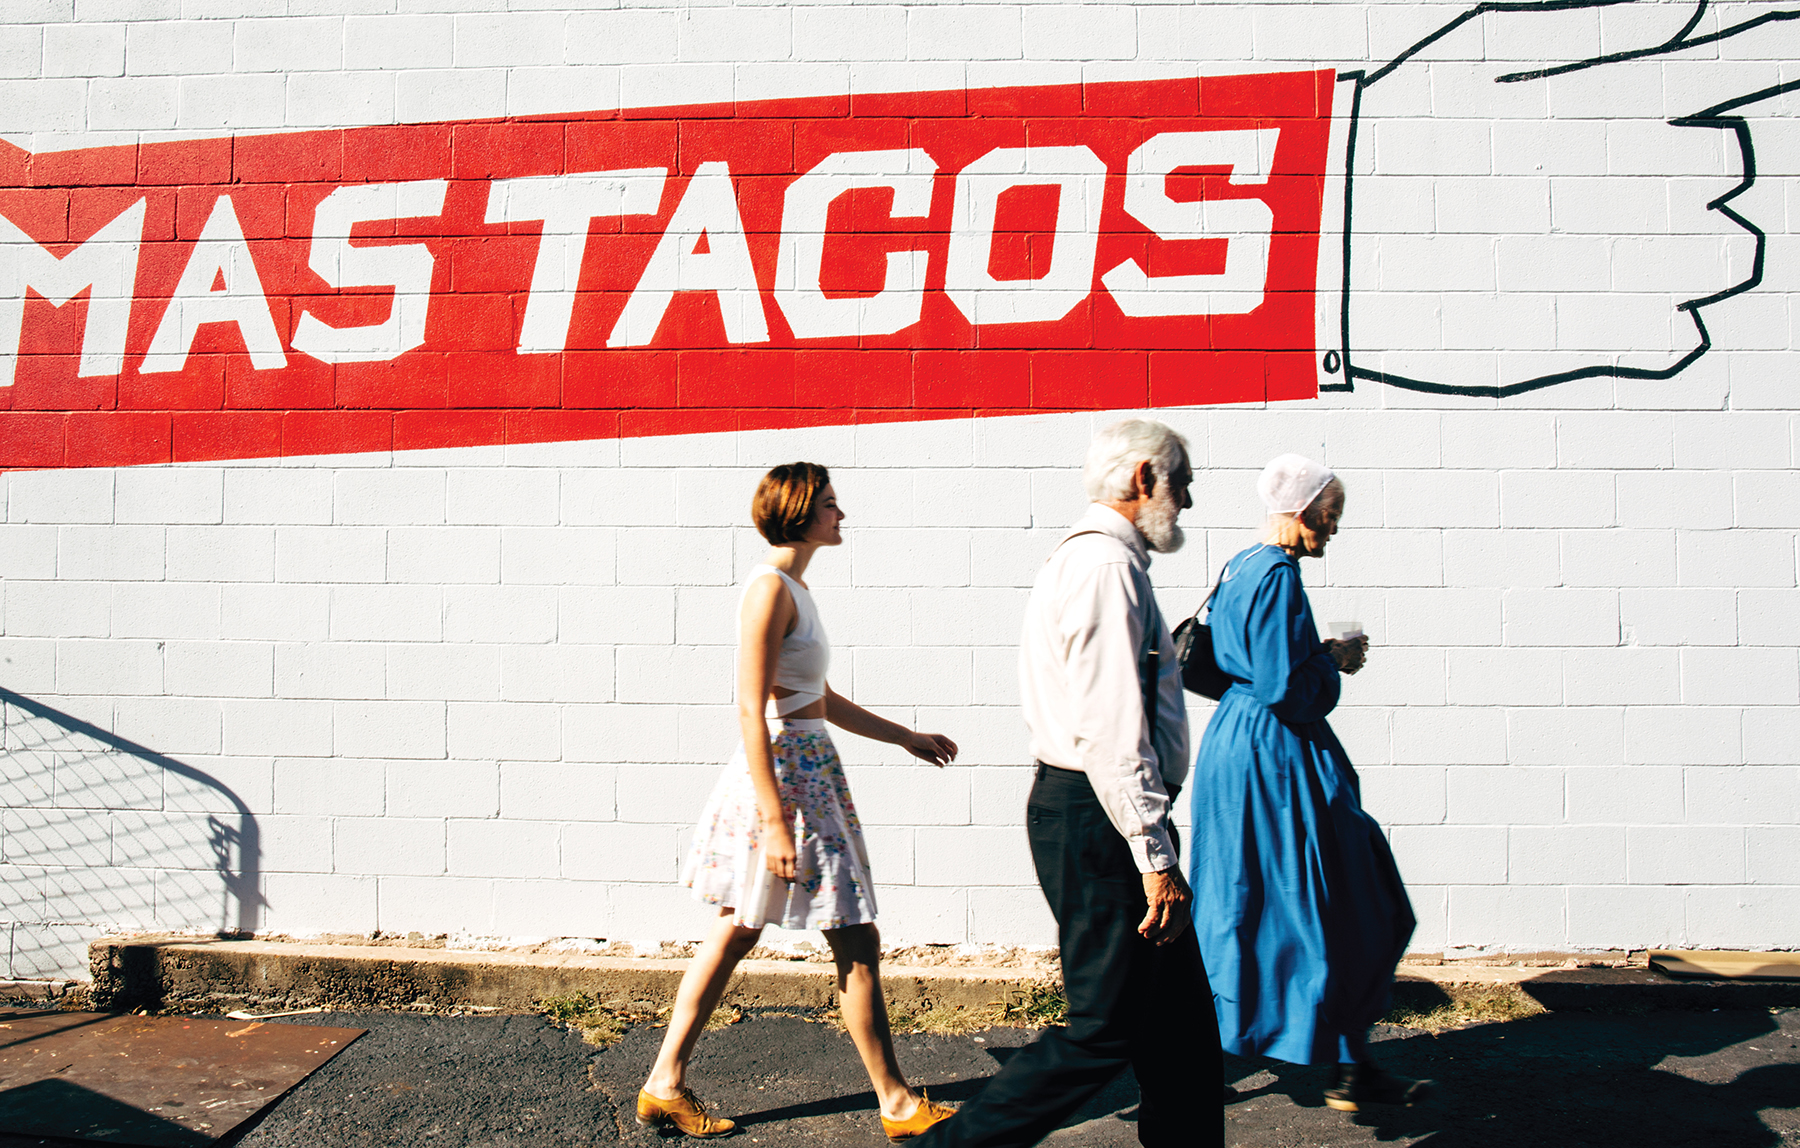 Mennonites at Mas Tacos. An outtake from photographer Heidi Ross' new book,   Nashville: Scenes from the New American South  .